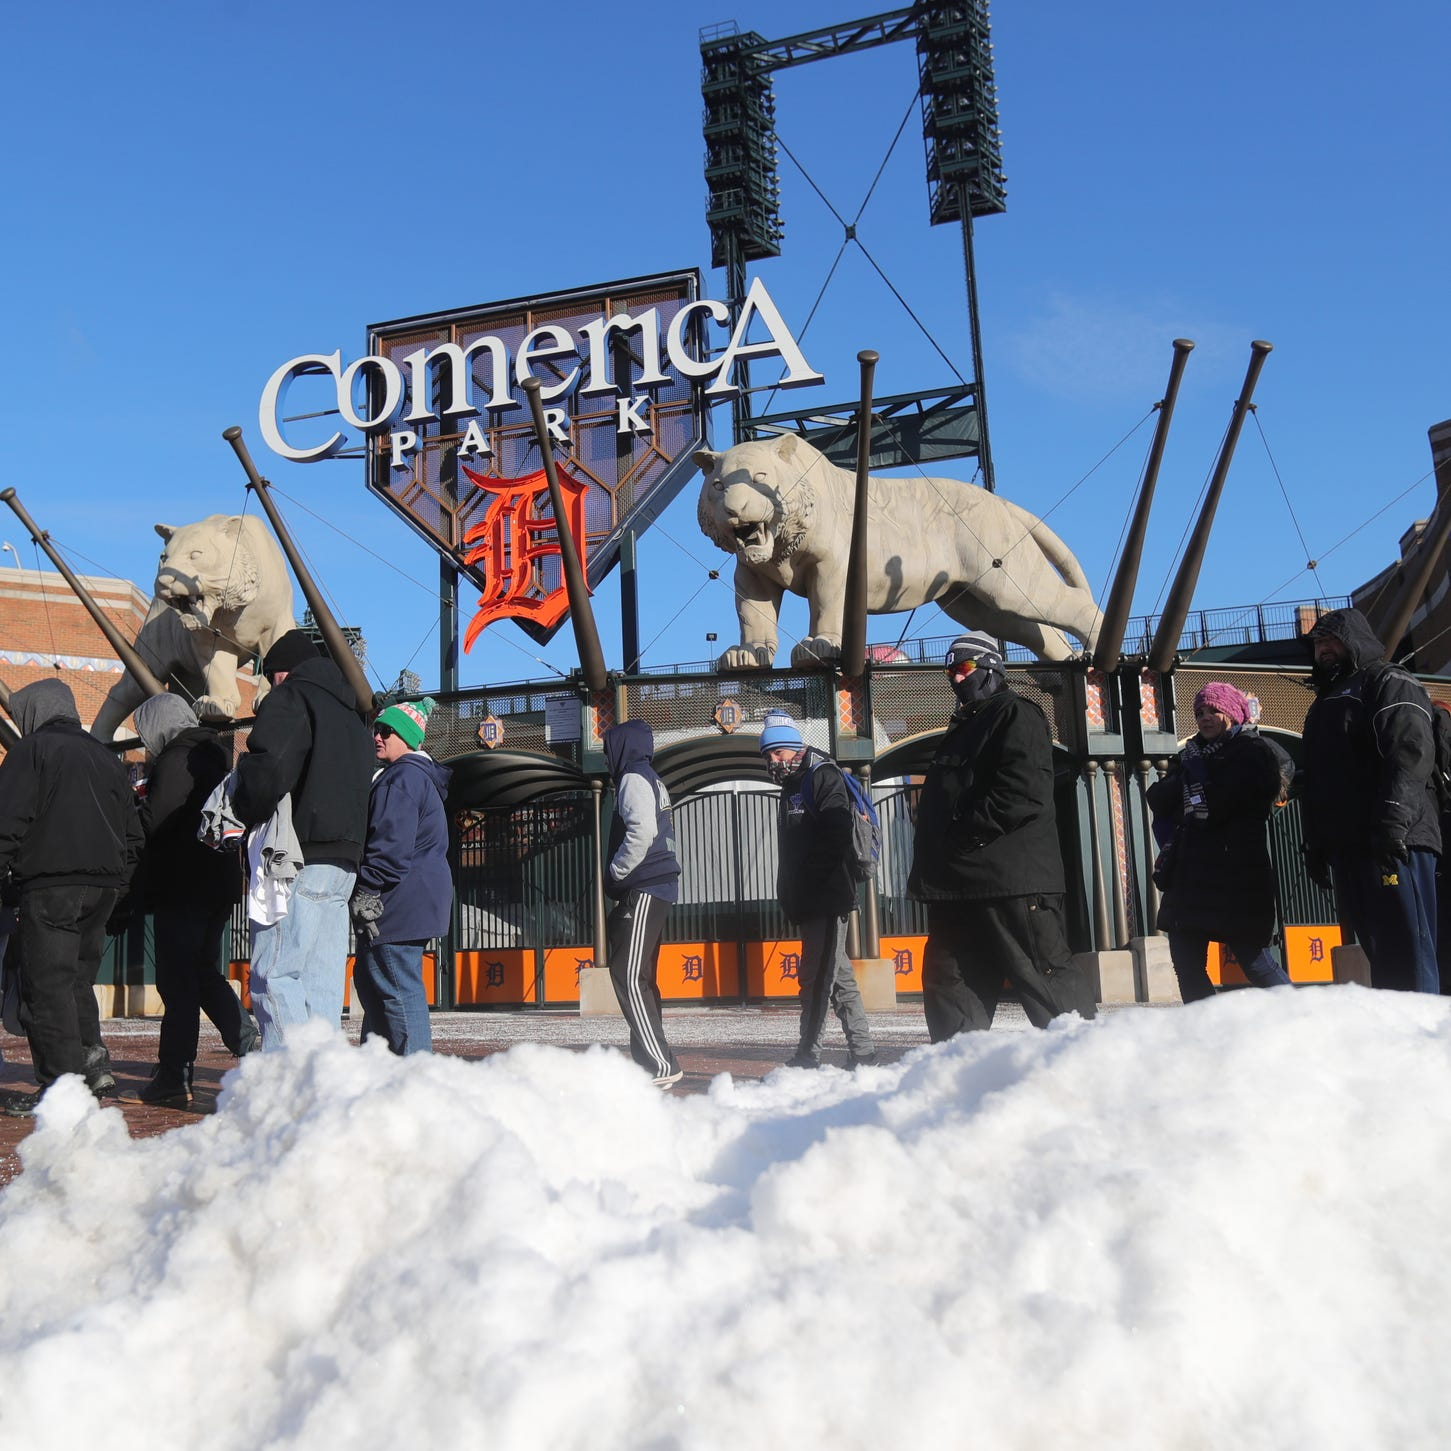 It could snow on Detroit Tigers' Opening Day because, you know, Michigan